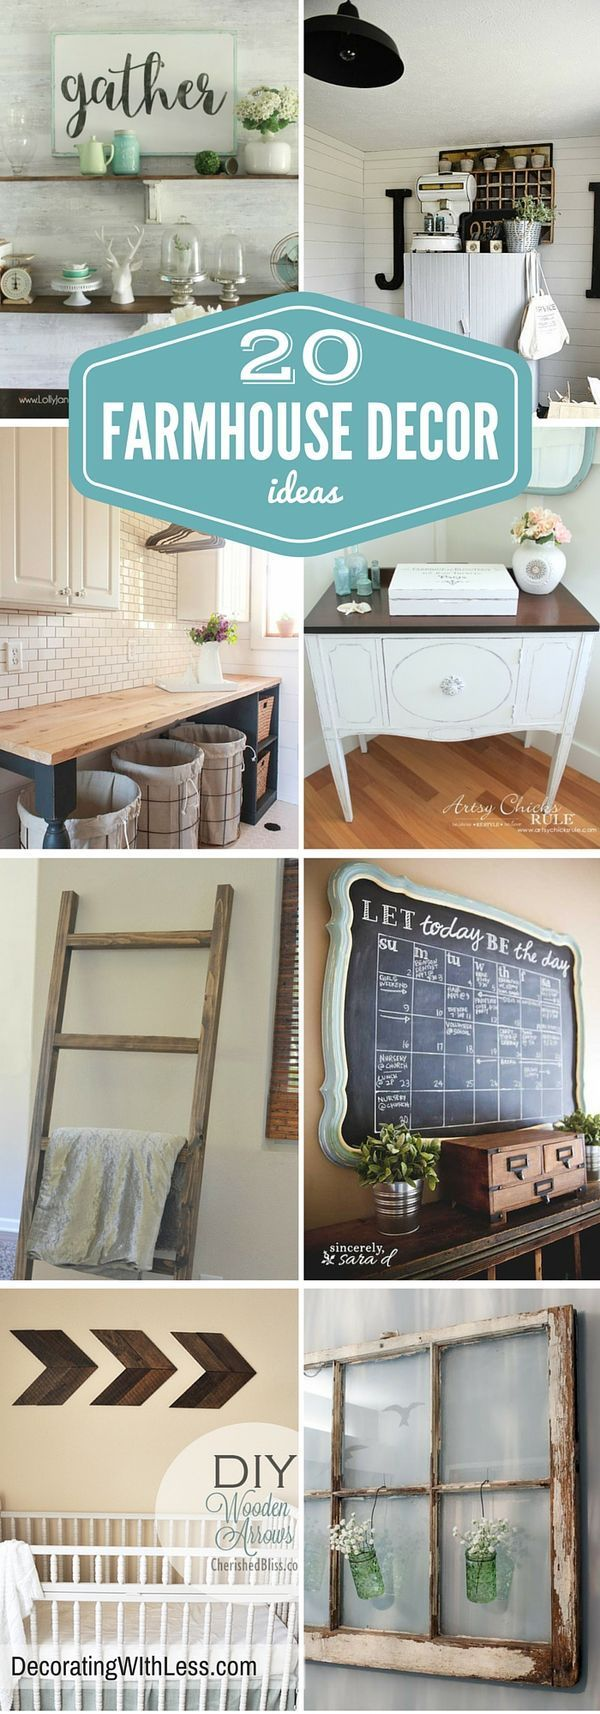 best Farmhouse Style images on Pinterest Beam ceilings